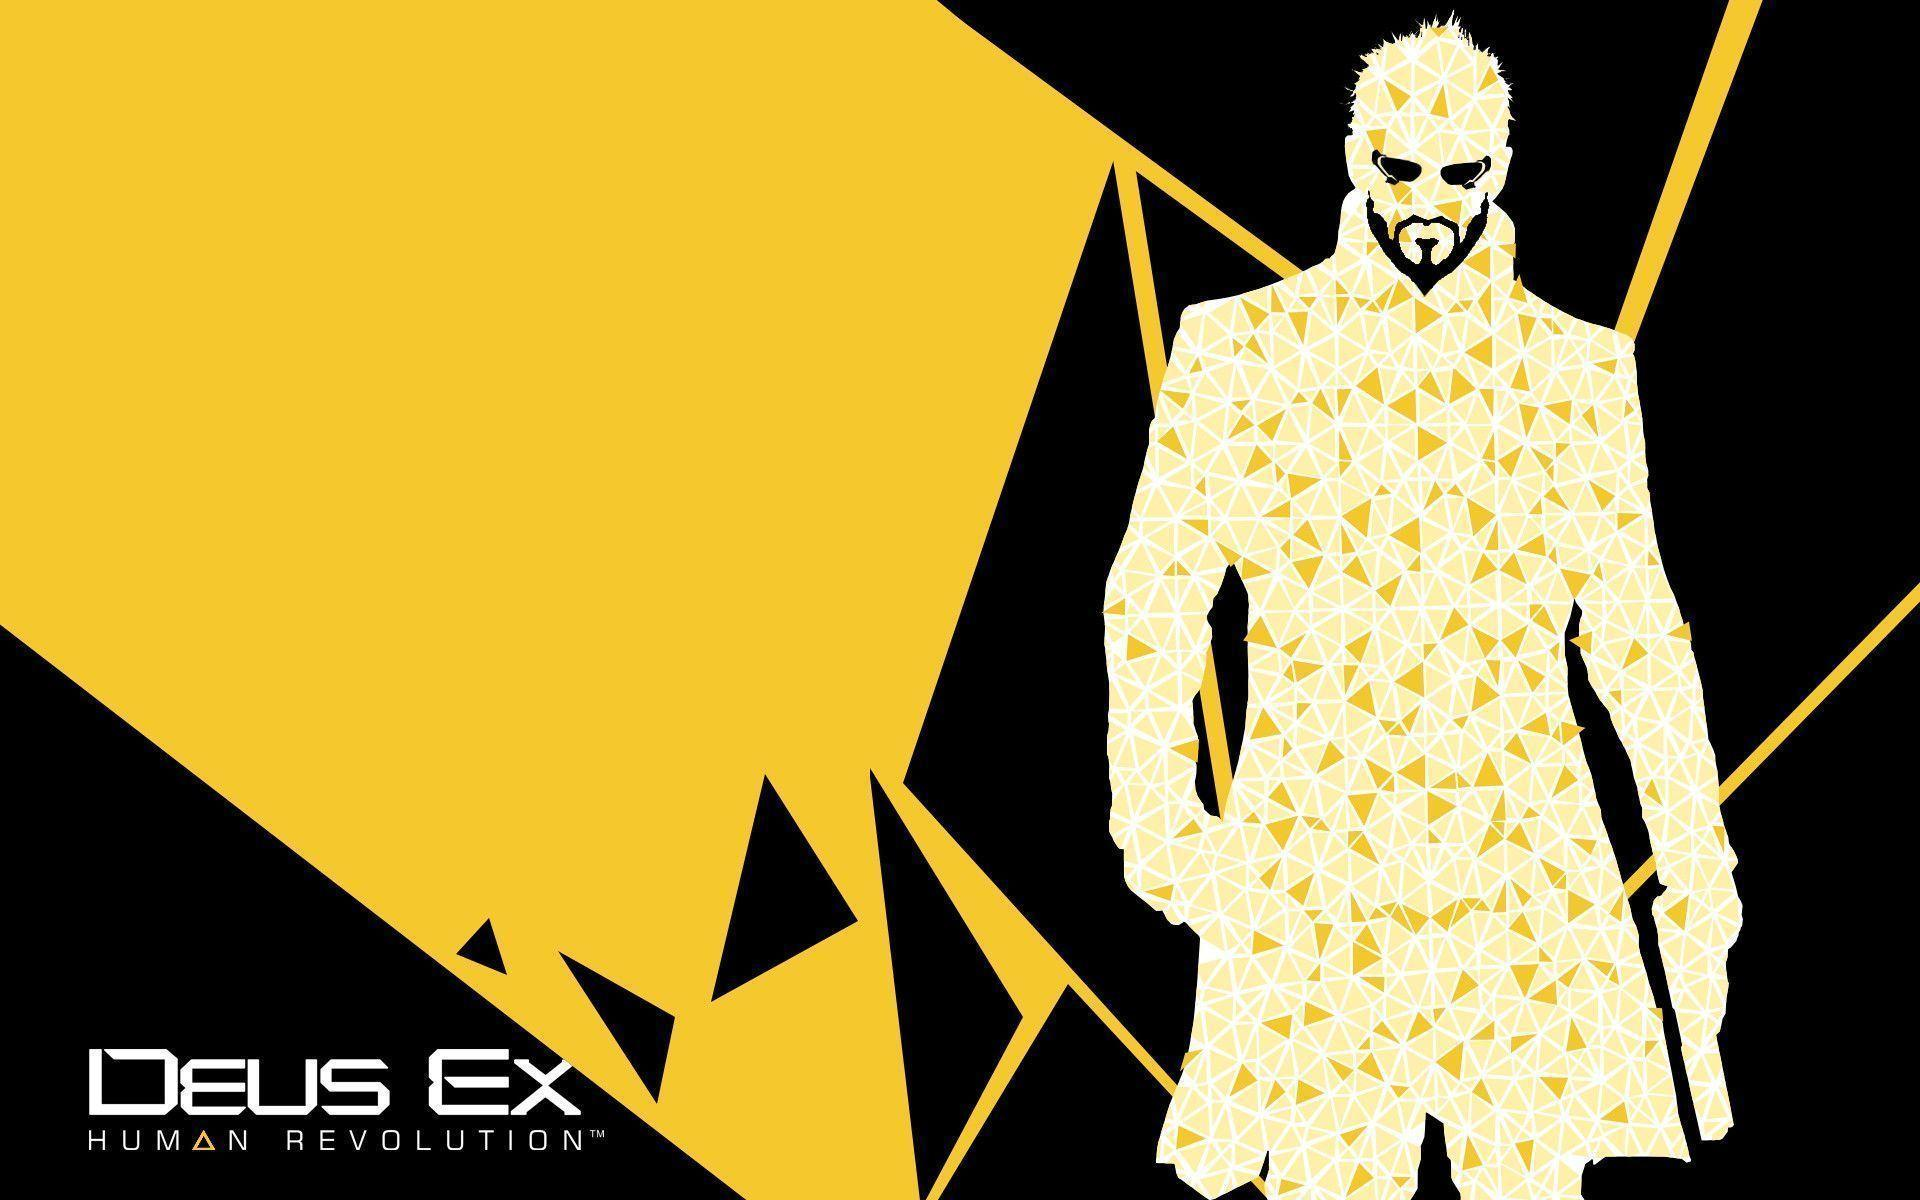 Deus Ex Human Revolution Wallpapers Triangular